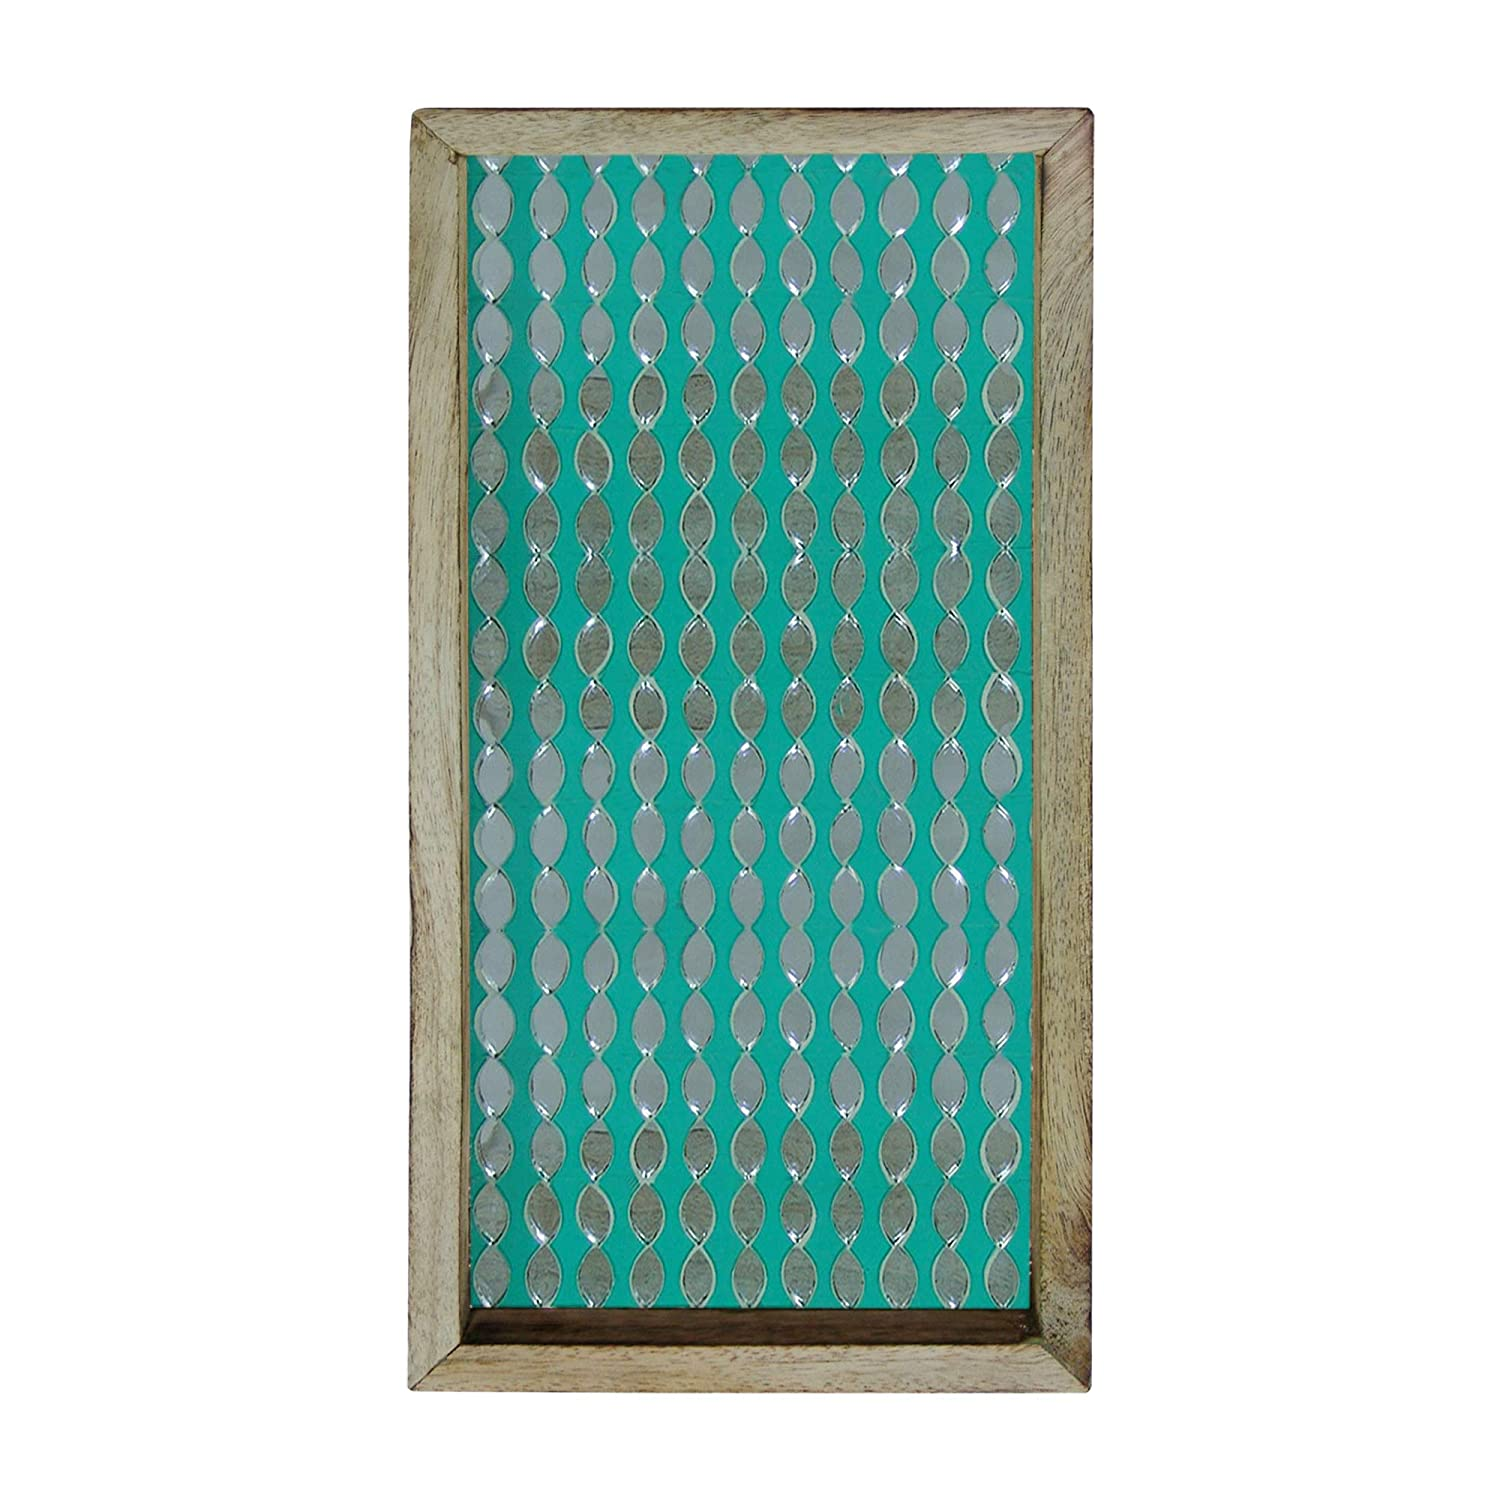 Disposable Dinner Napkin Caddy Aqua Dining Room Tables /& Guest Bathrooms Luxurious /& Decorative nu steel NuSteel Guest Towel Holder Tray Perfect for Kitchen Counters Elegant